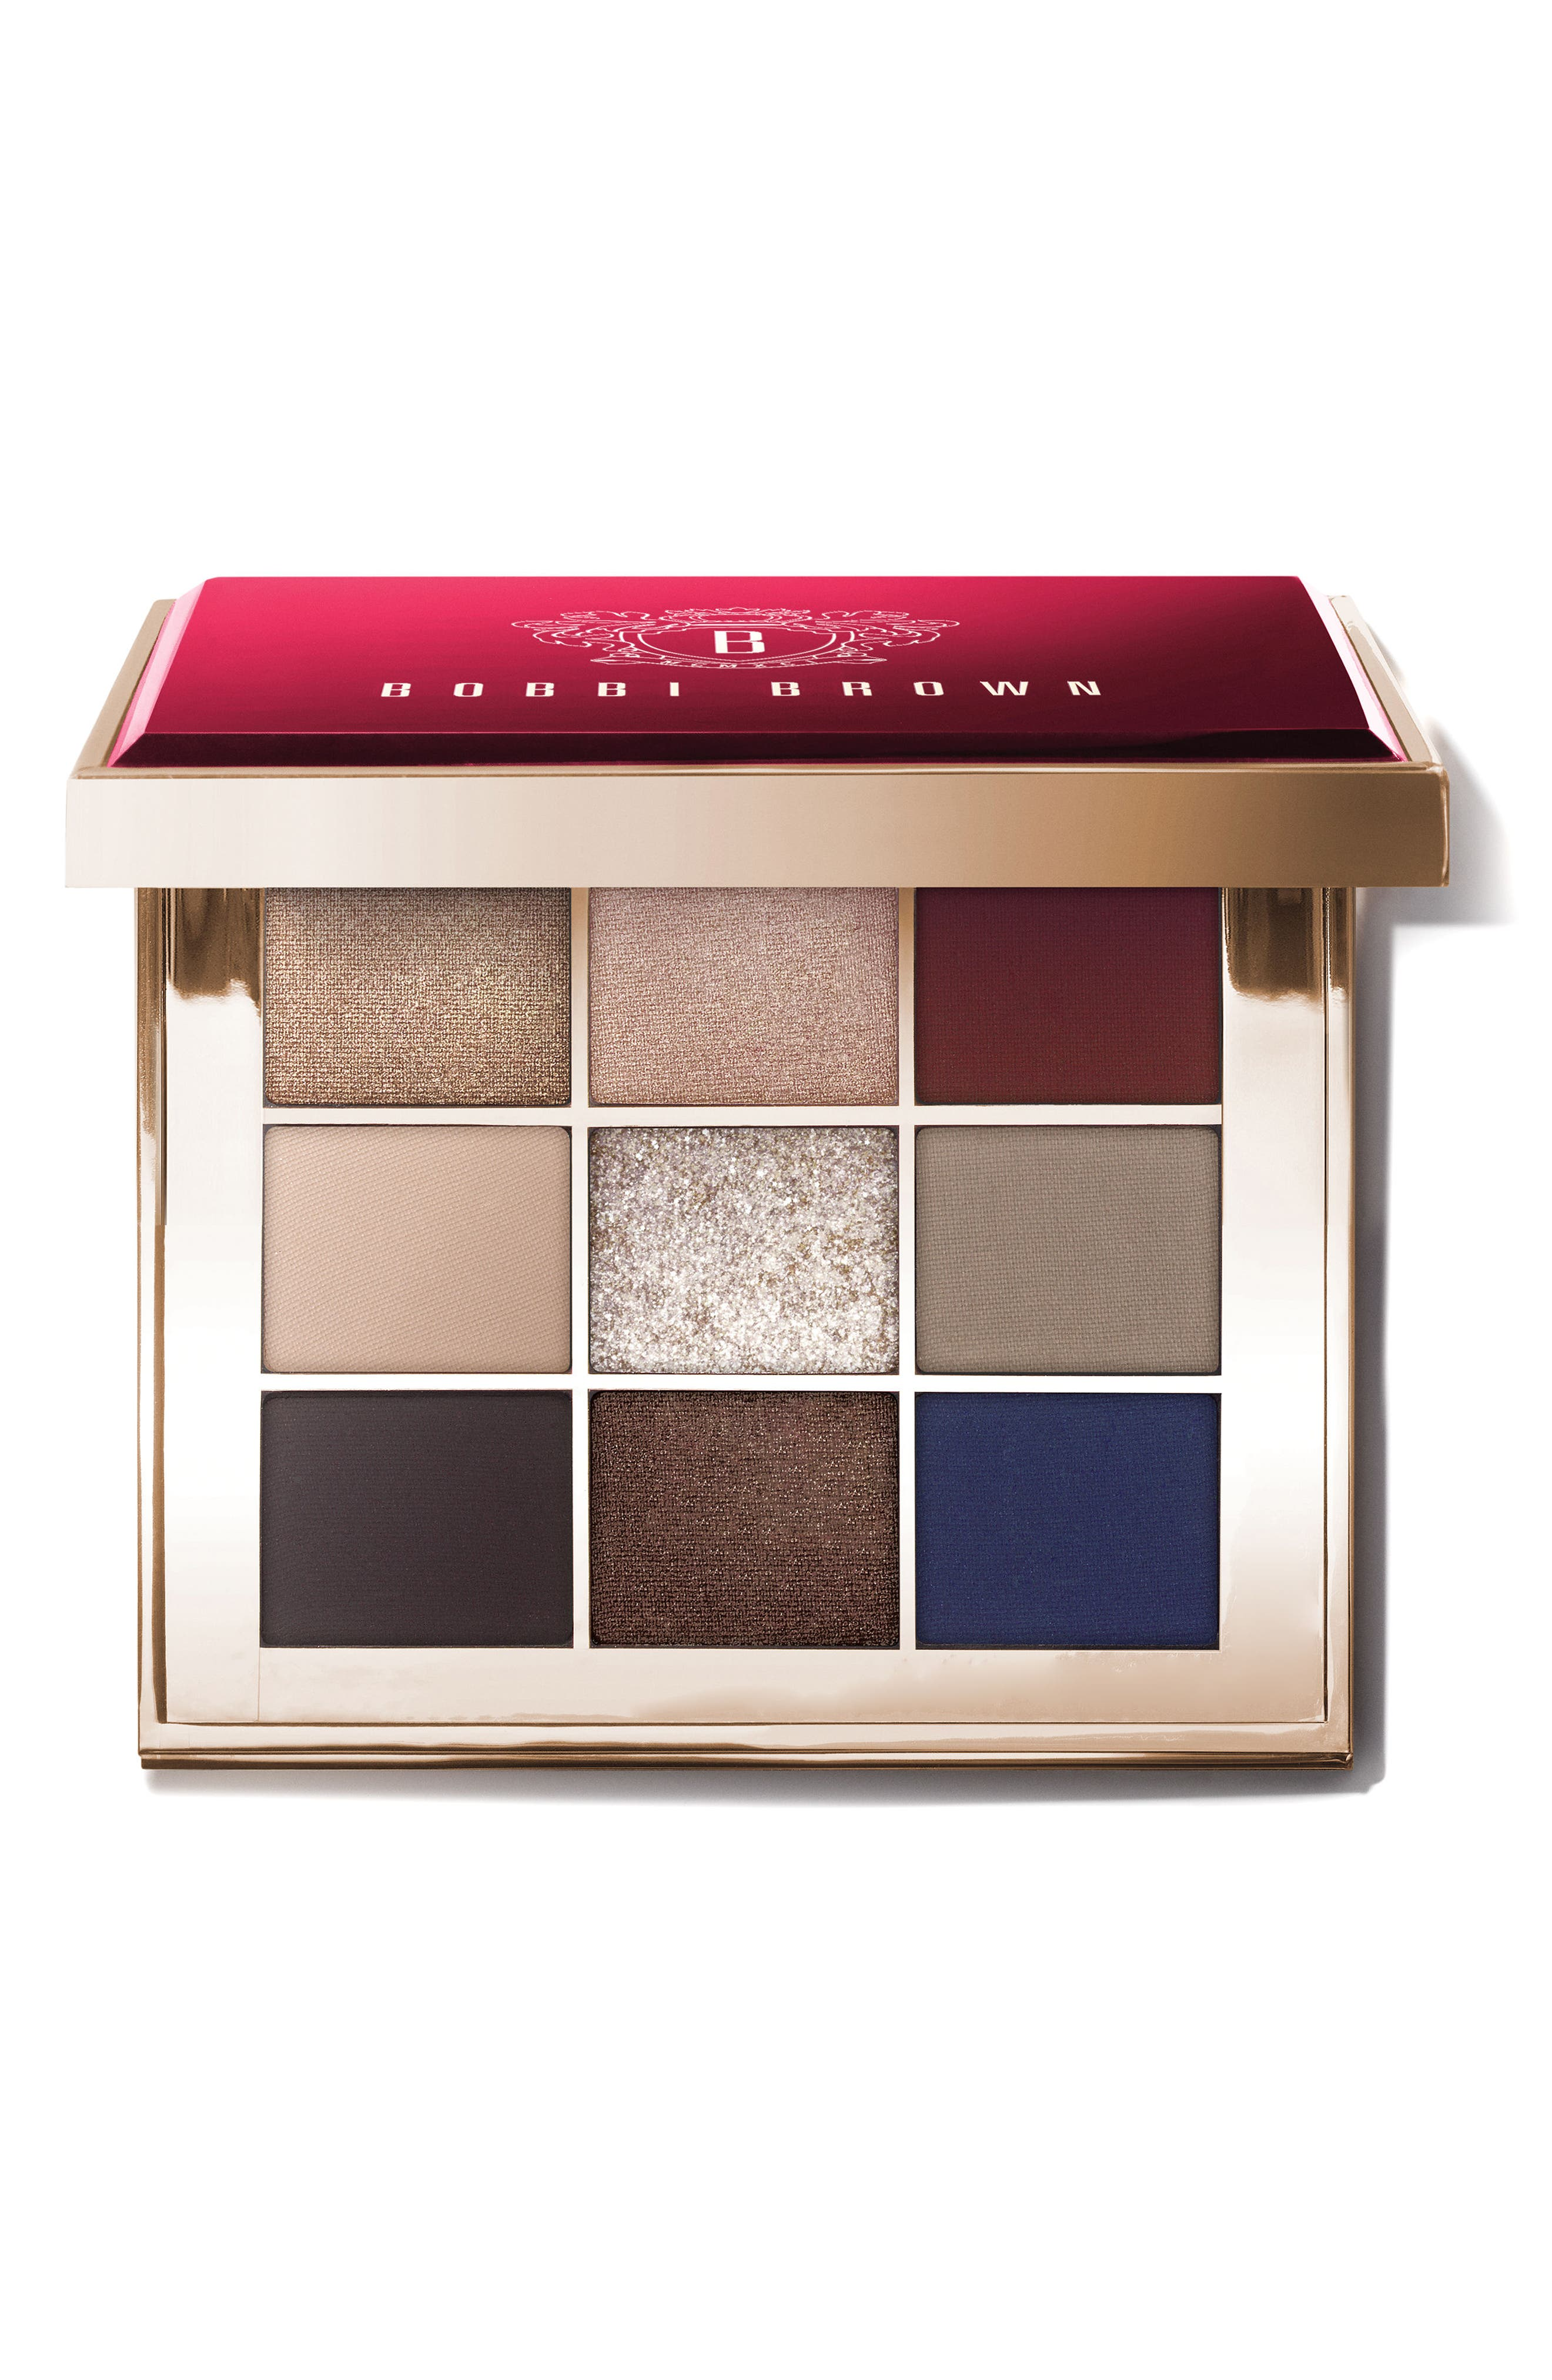 Caviar & Rubies Eyeshadow Palette,                             Main thumbnail 1, color,                             No Color